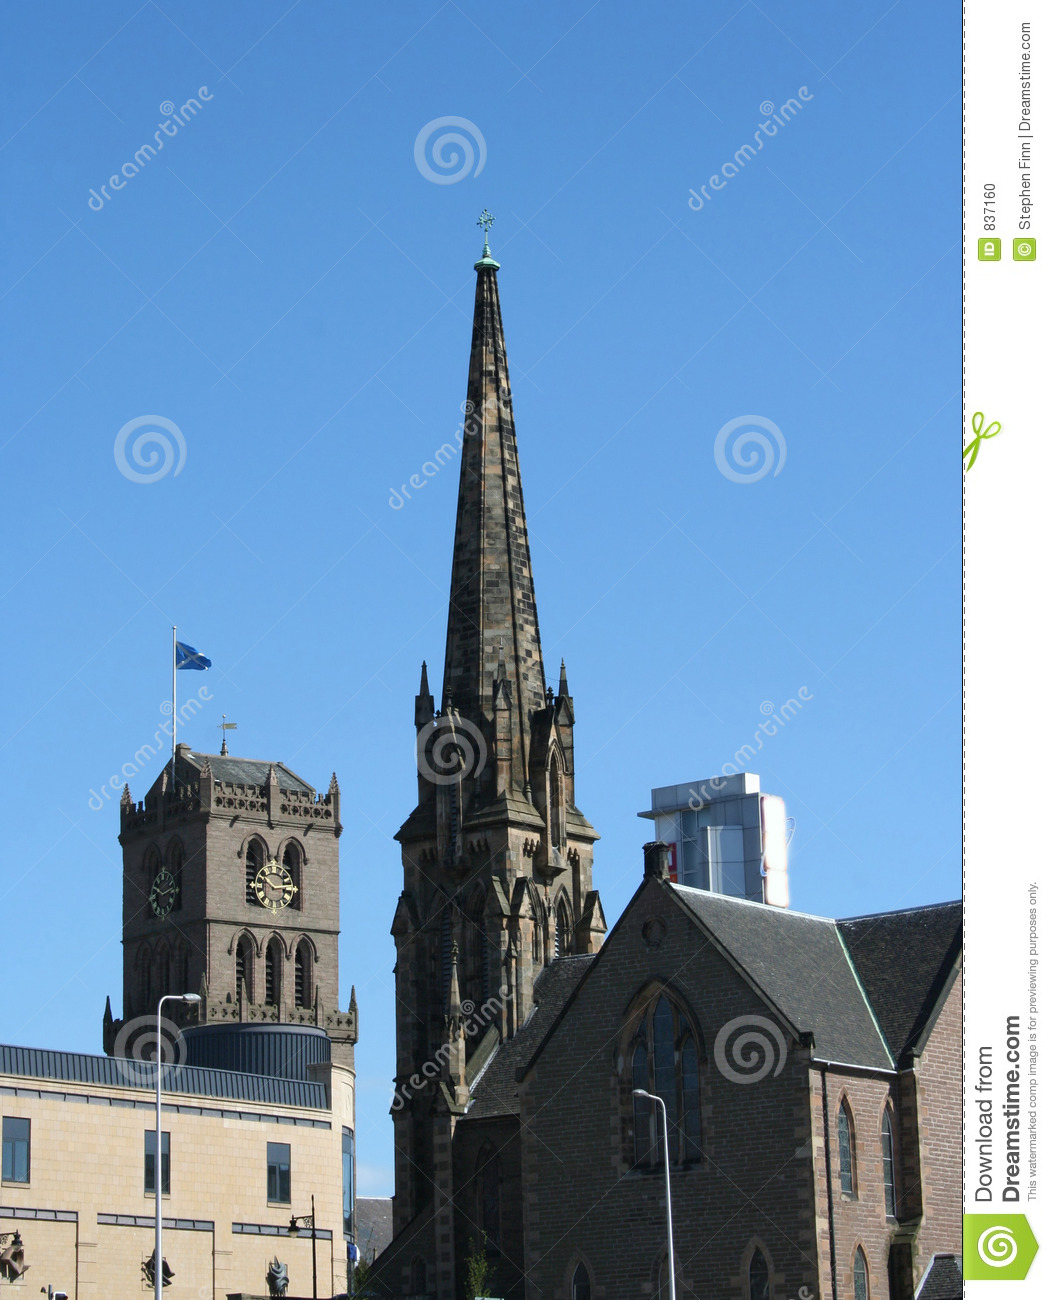 Churches of Dundee